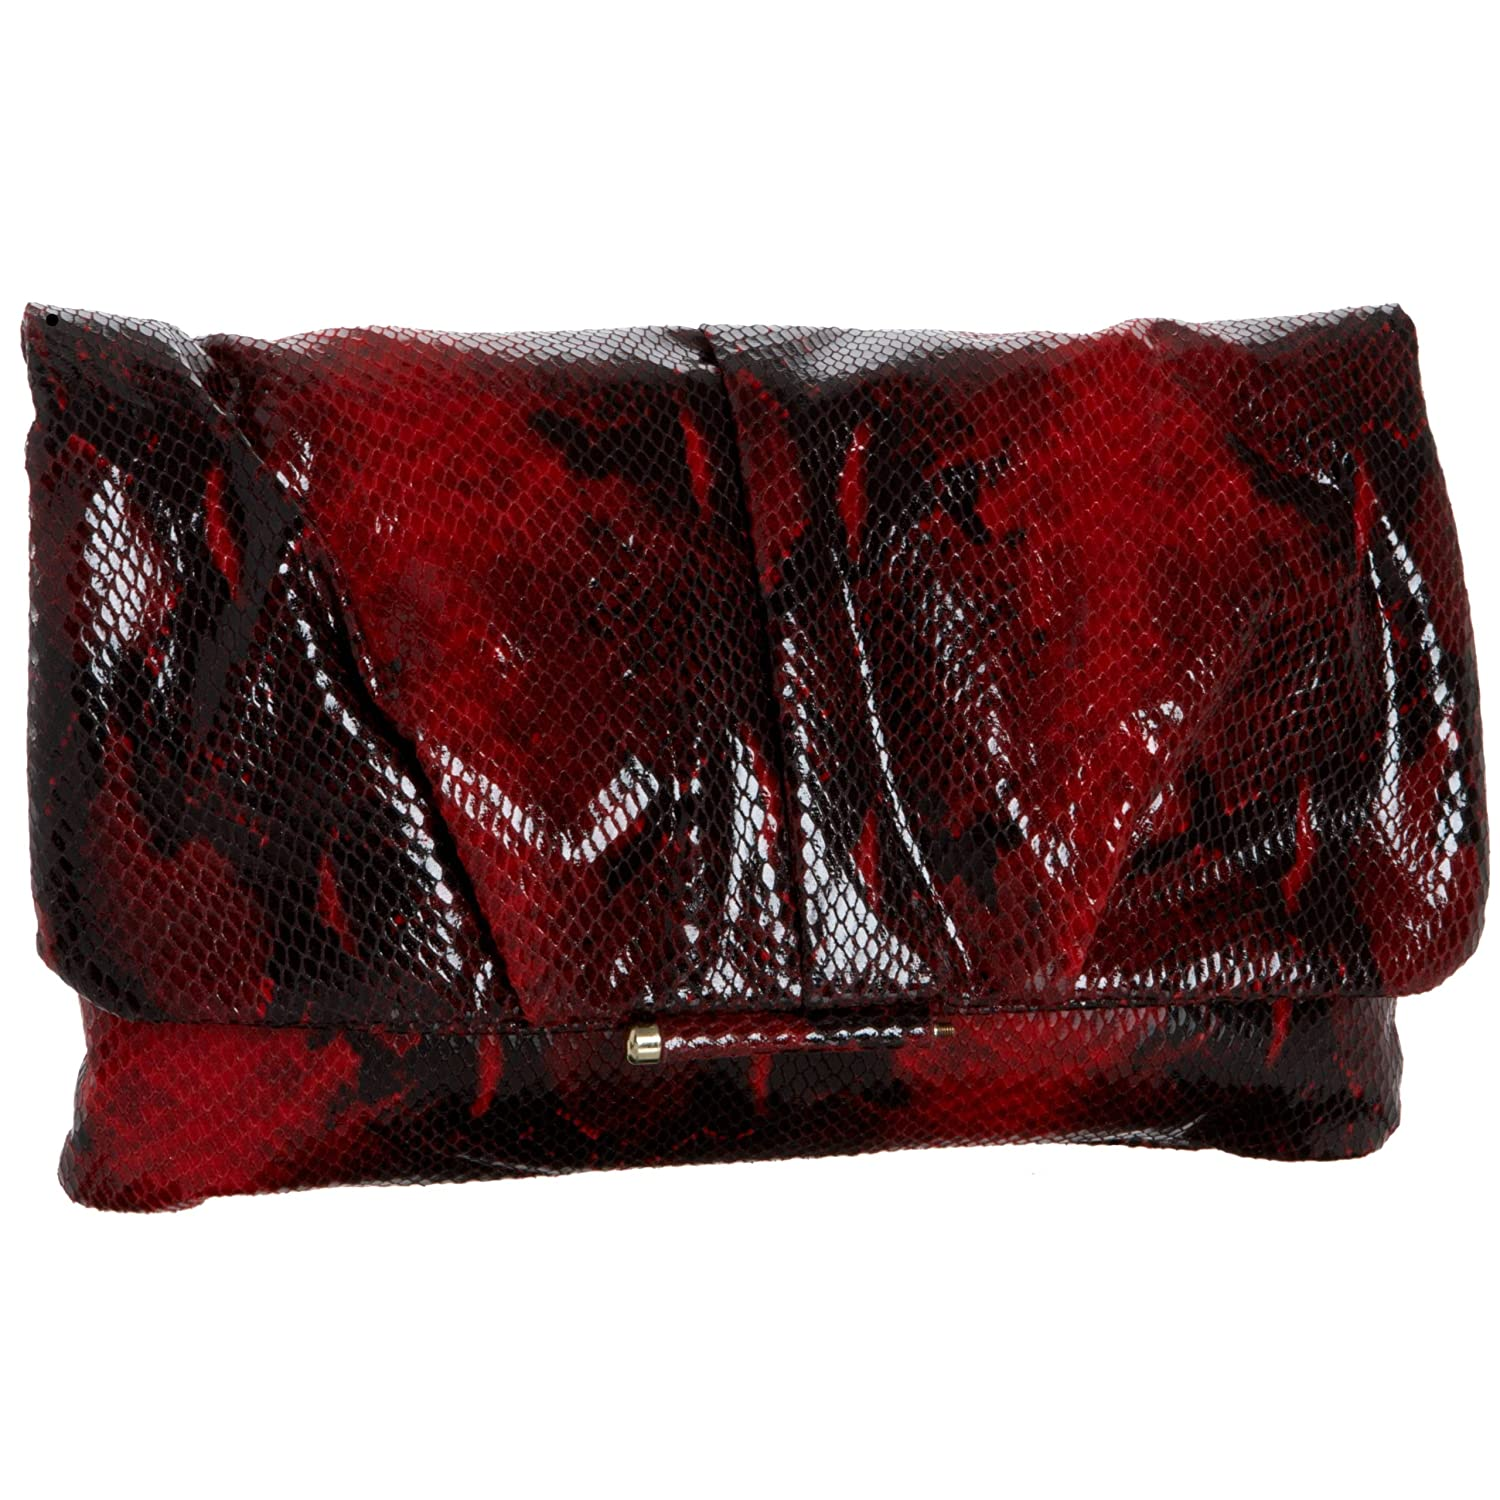 London Fog - Sandra Clutch  :  london fog sandra clutch accessory clutch london fog